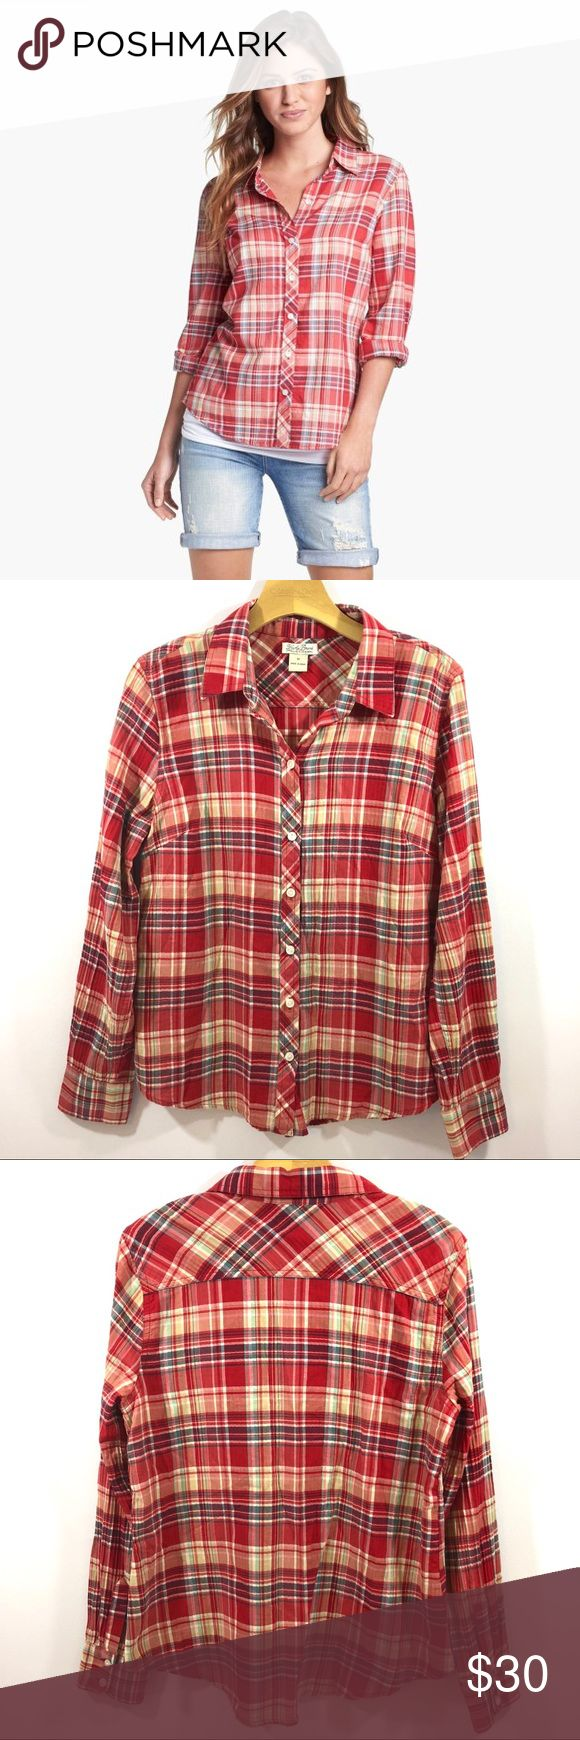 Lucky Brand Red Plaid Shirt Lucky Brand Red Plaid Shirt Size Medium  Measurements in photos. Care tag cut out. Lucky Brand Tops Button Down Shirts